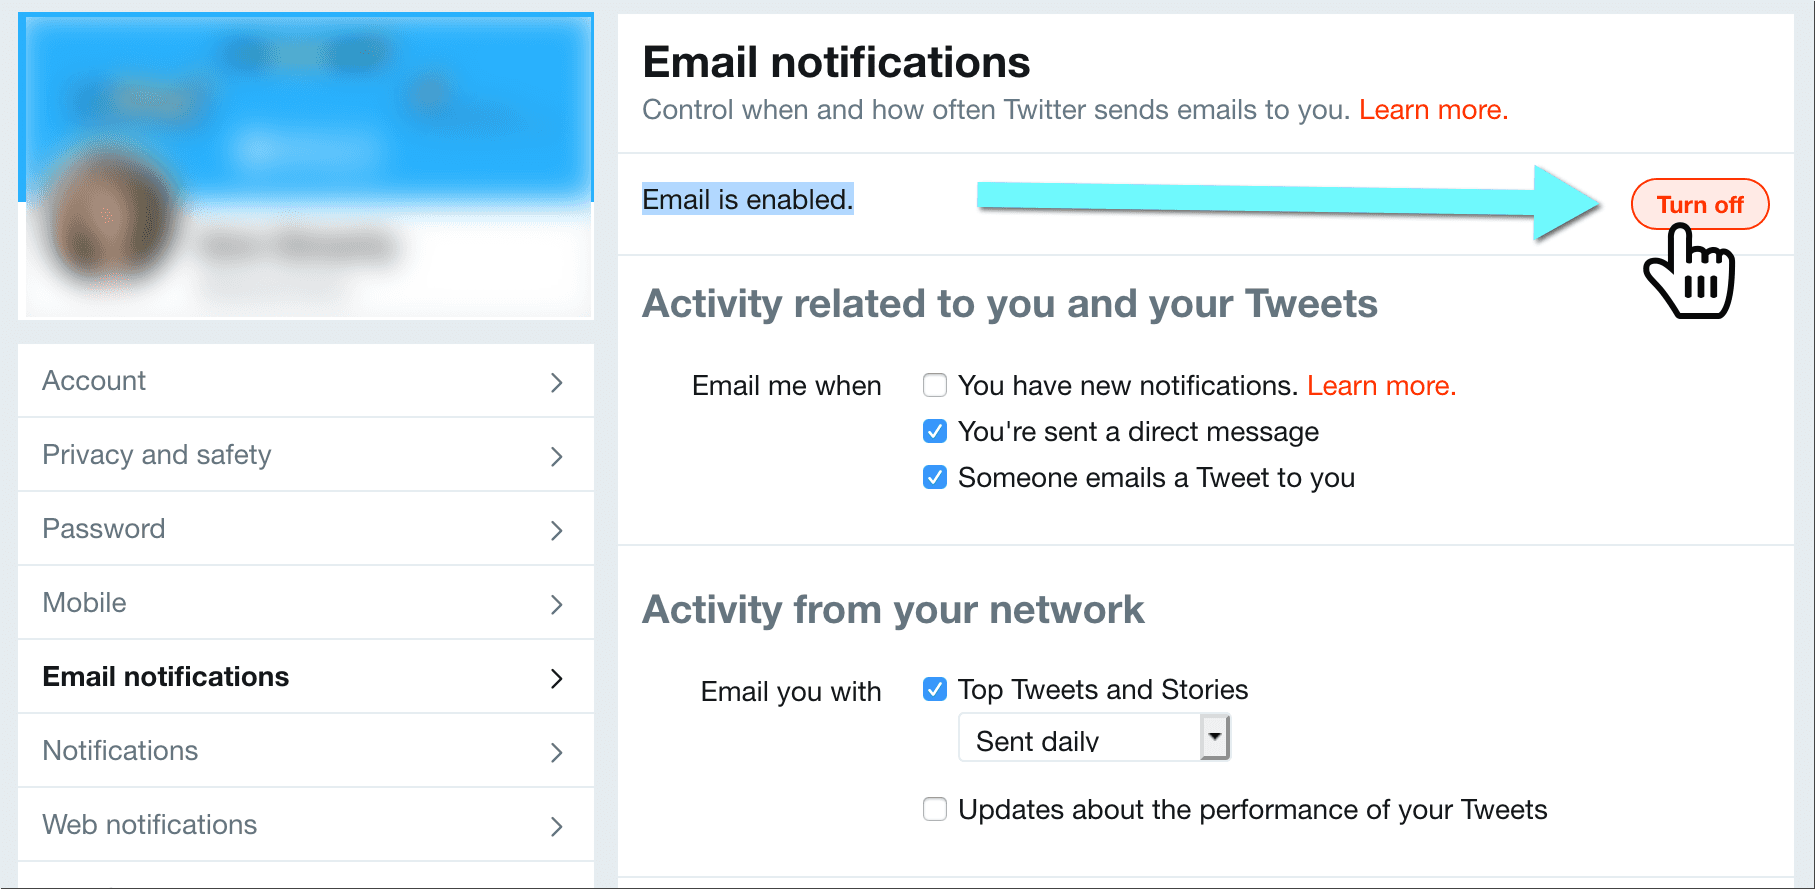 How to Stop Getting Emails from Twitter on a Desktop Browser